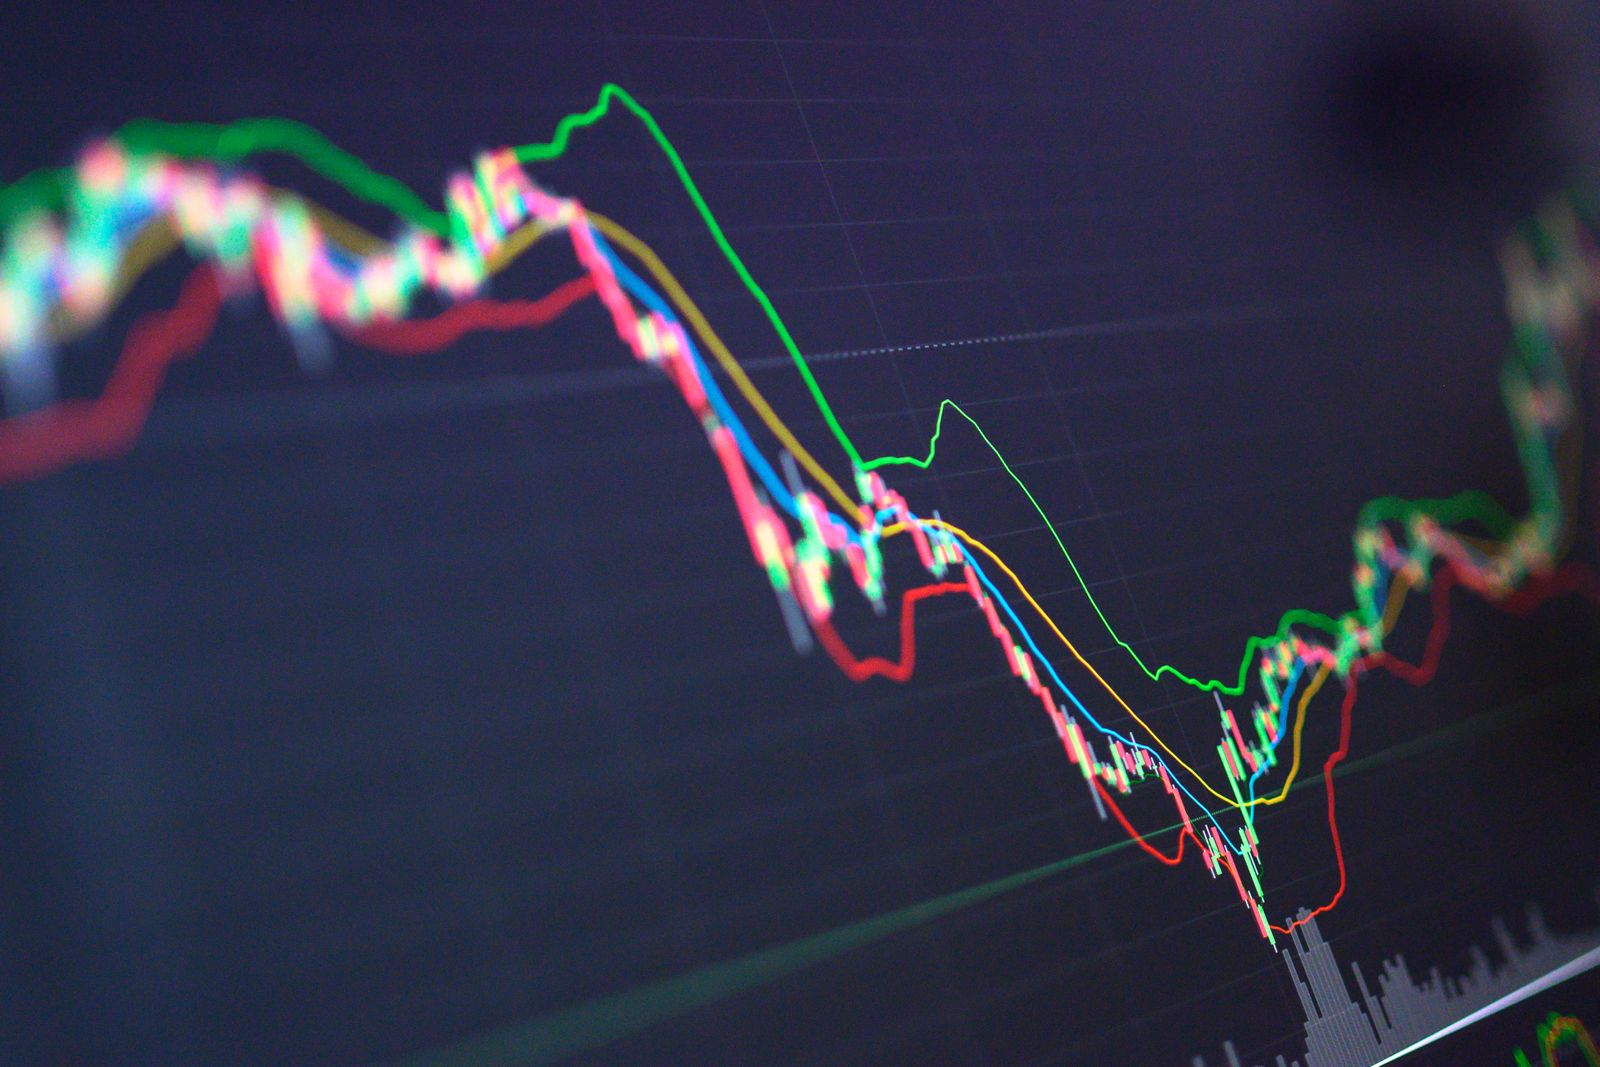 Stockmarket crash and Financial crisis Investment theme stockmarket and finance business analysis stockmarket